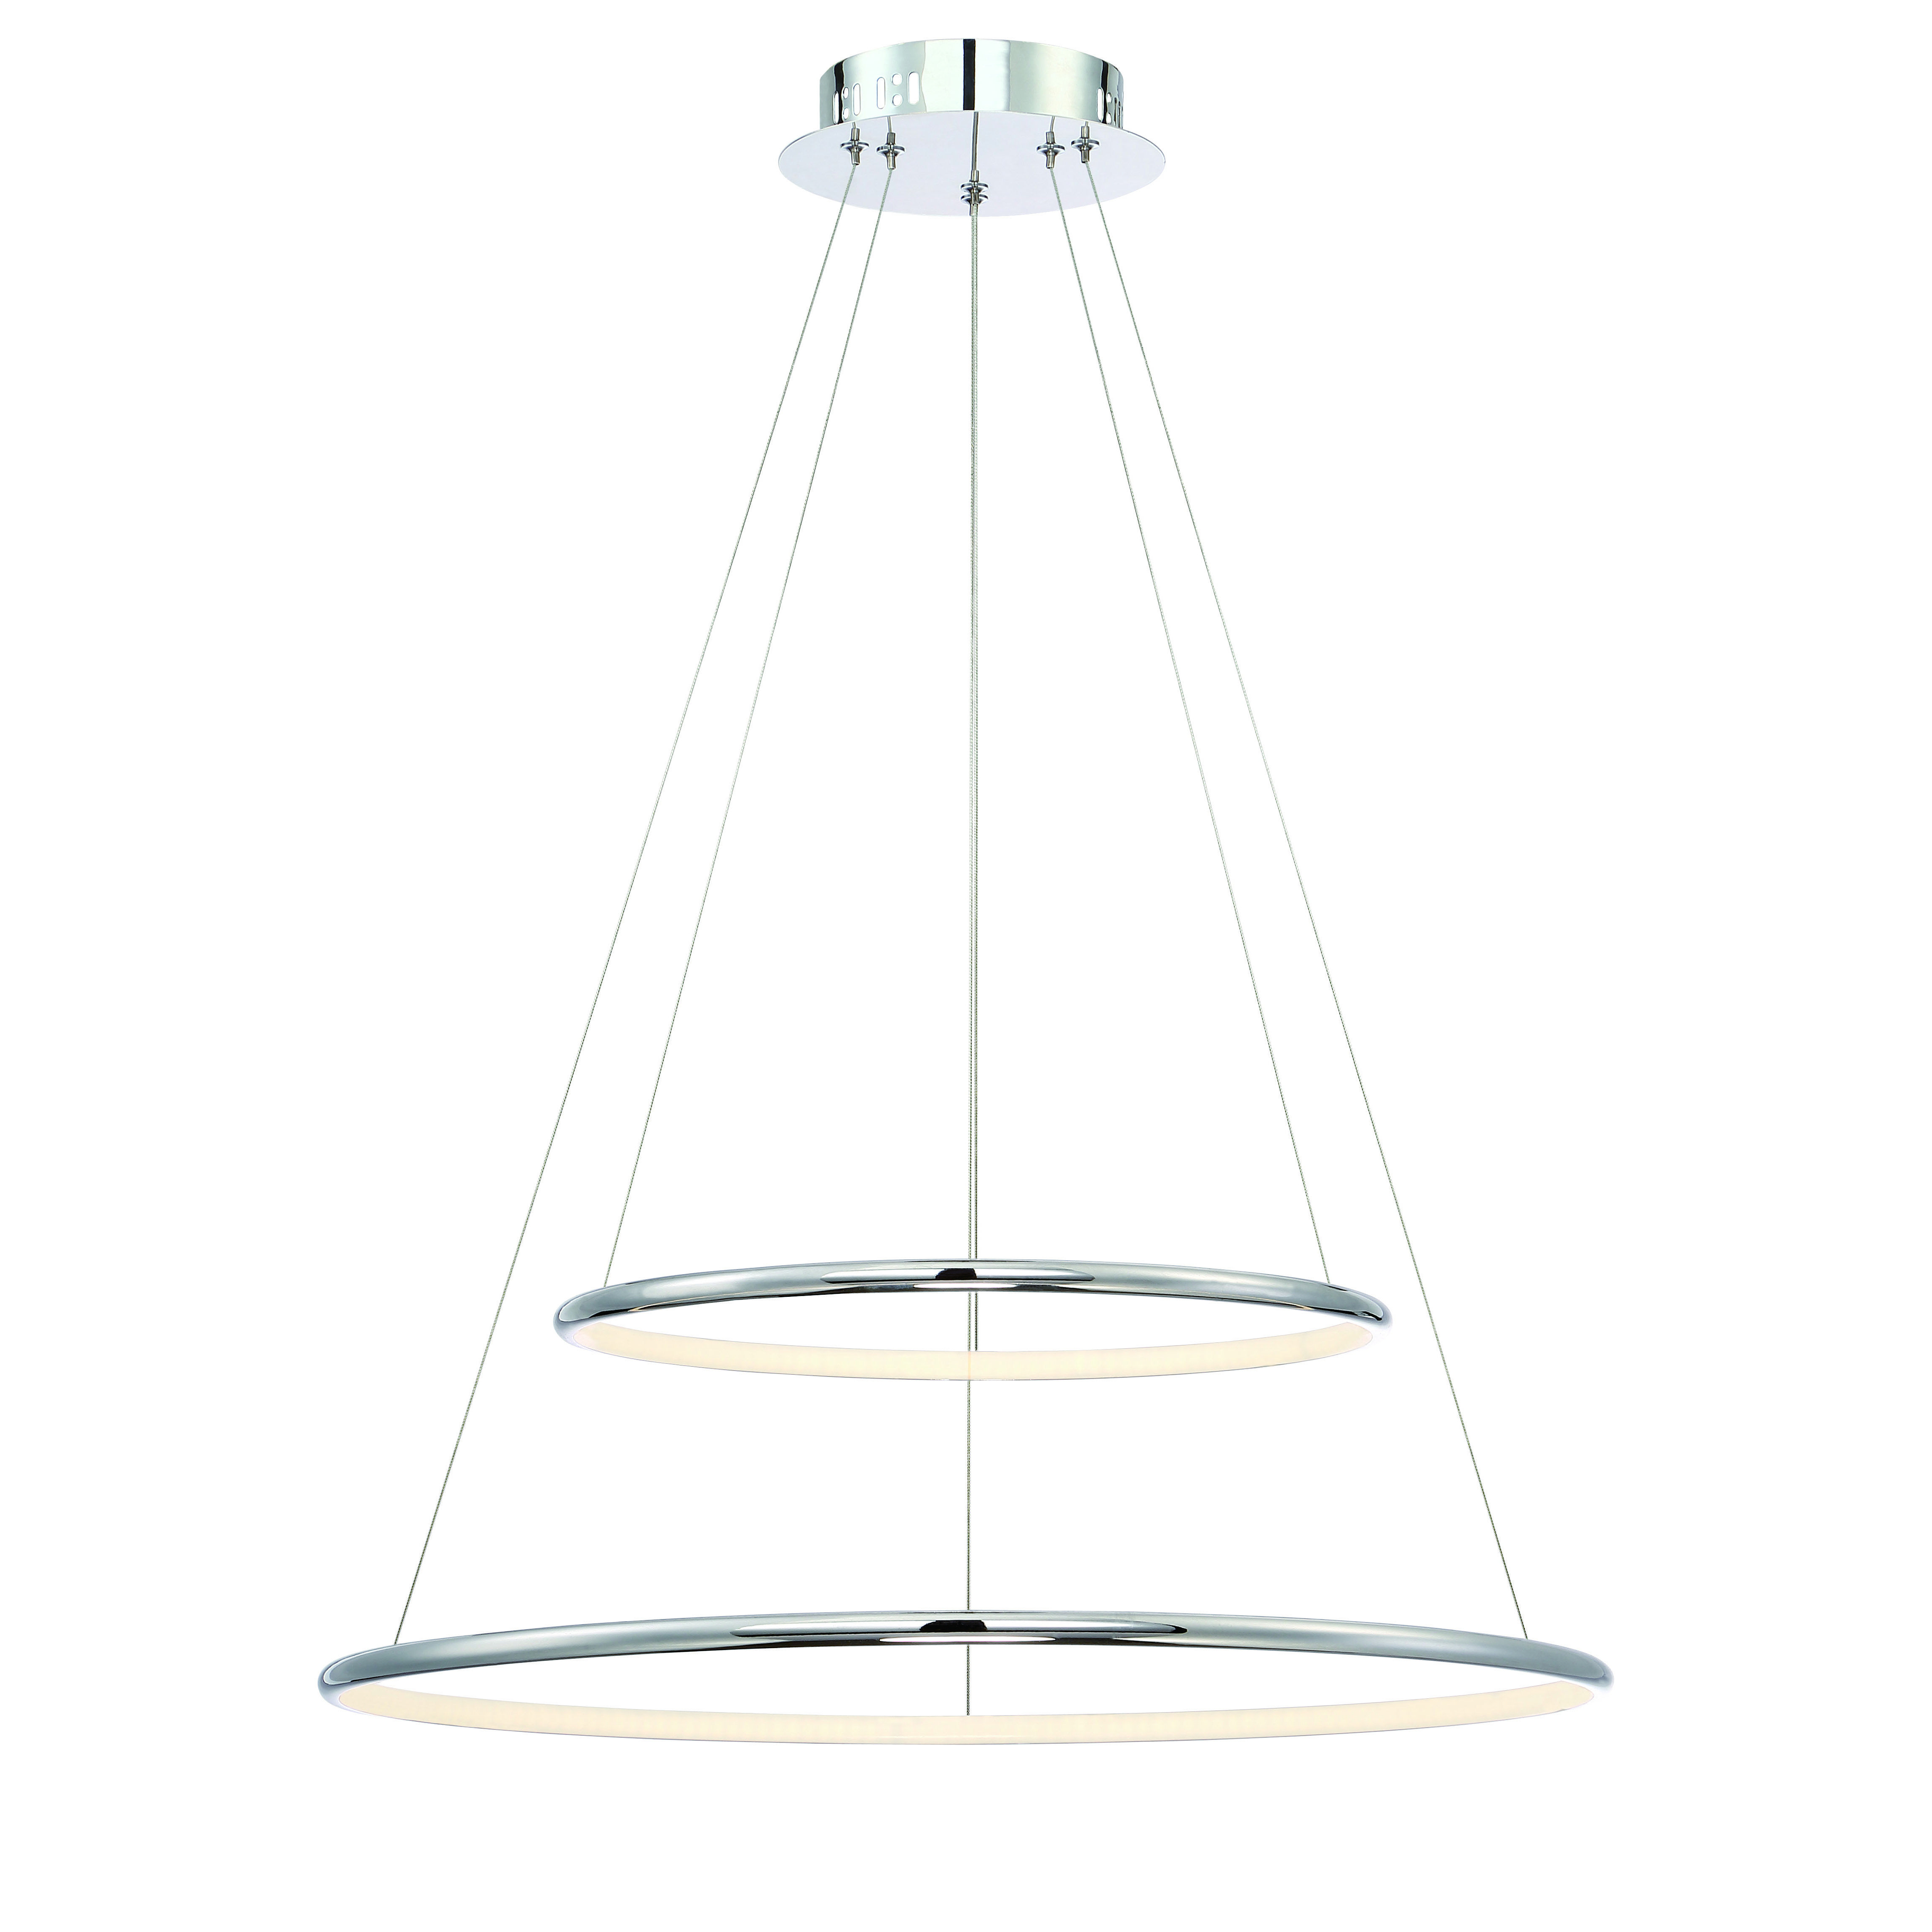 Eurofase Valley 31856 010 Led Double Tiered Chandelier Pertaining To Most Recent Chauvin 3 Light Lantern Geometric Pendants (View 11 of 20)